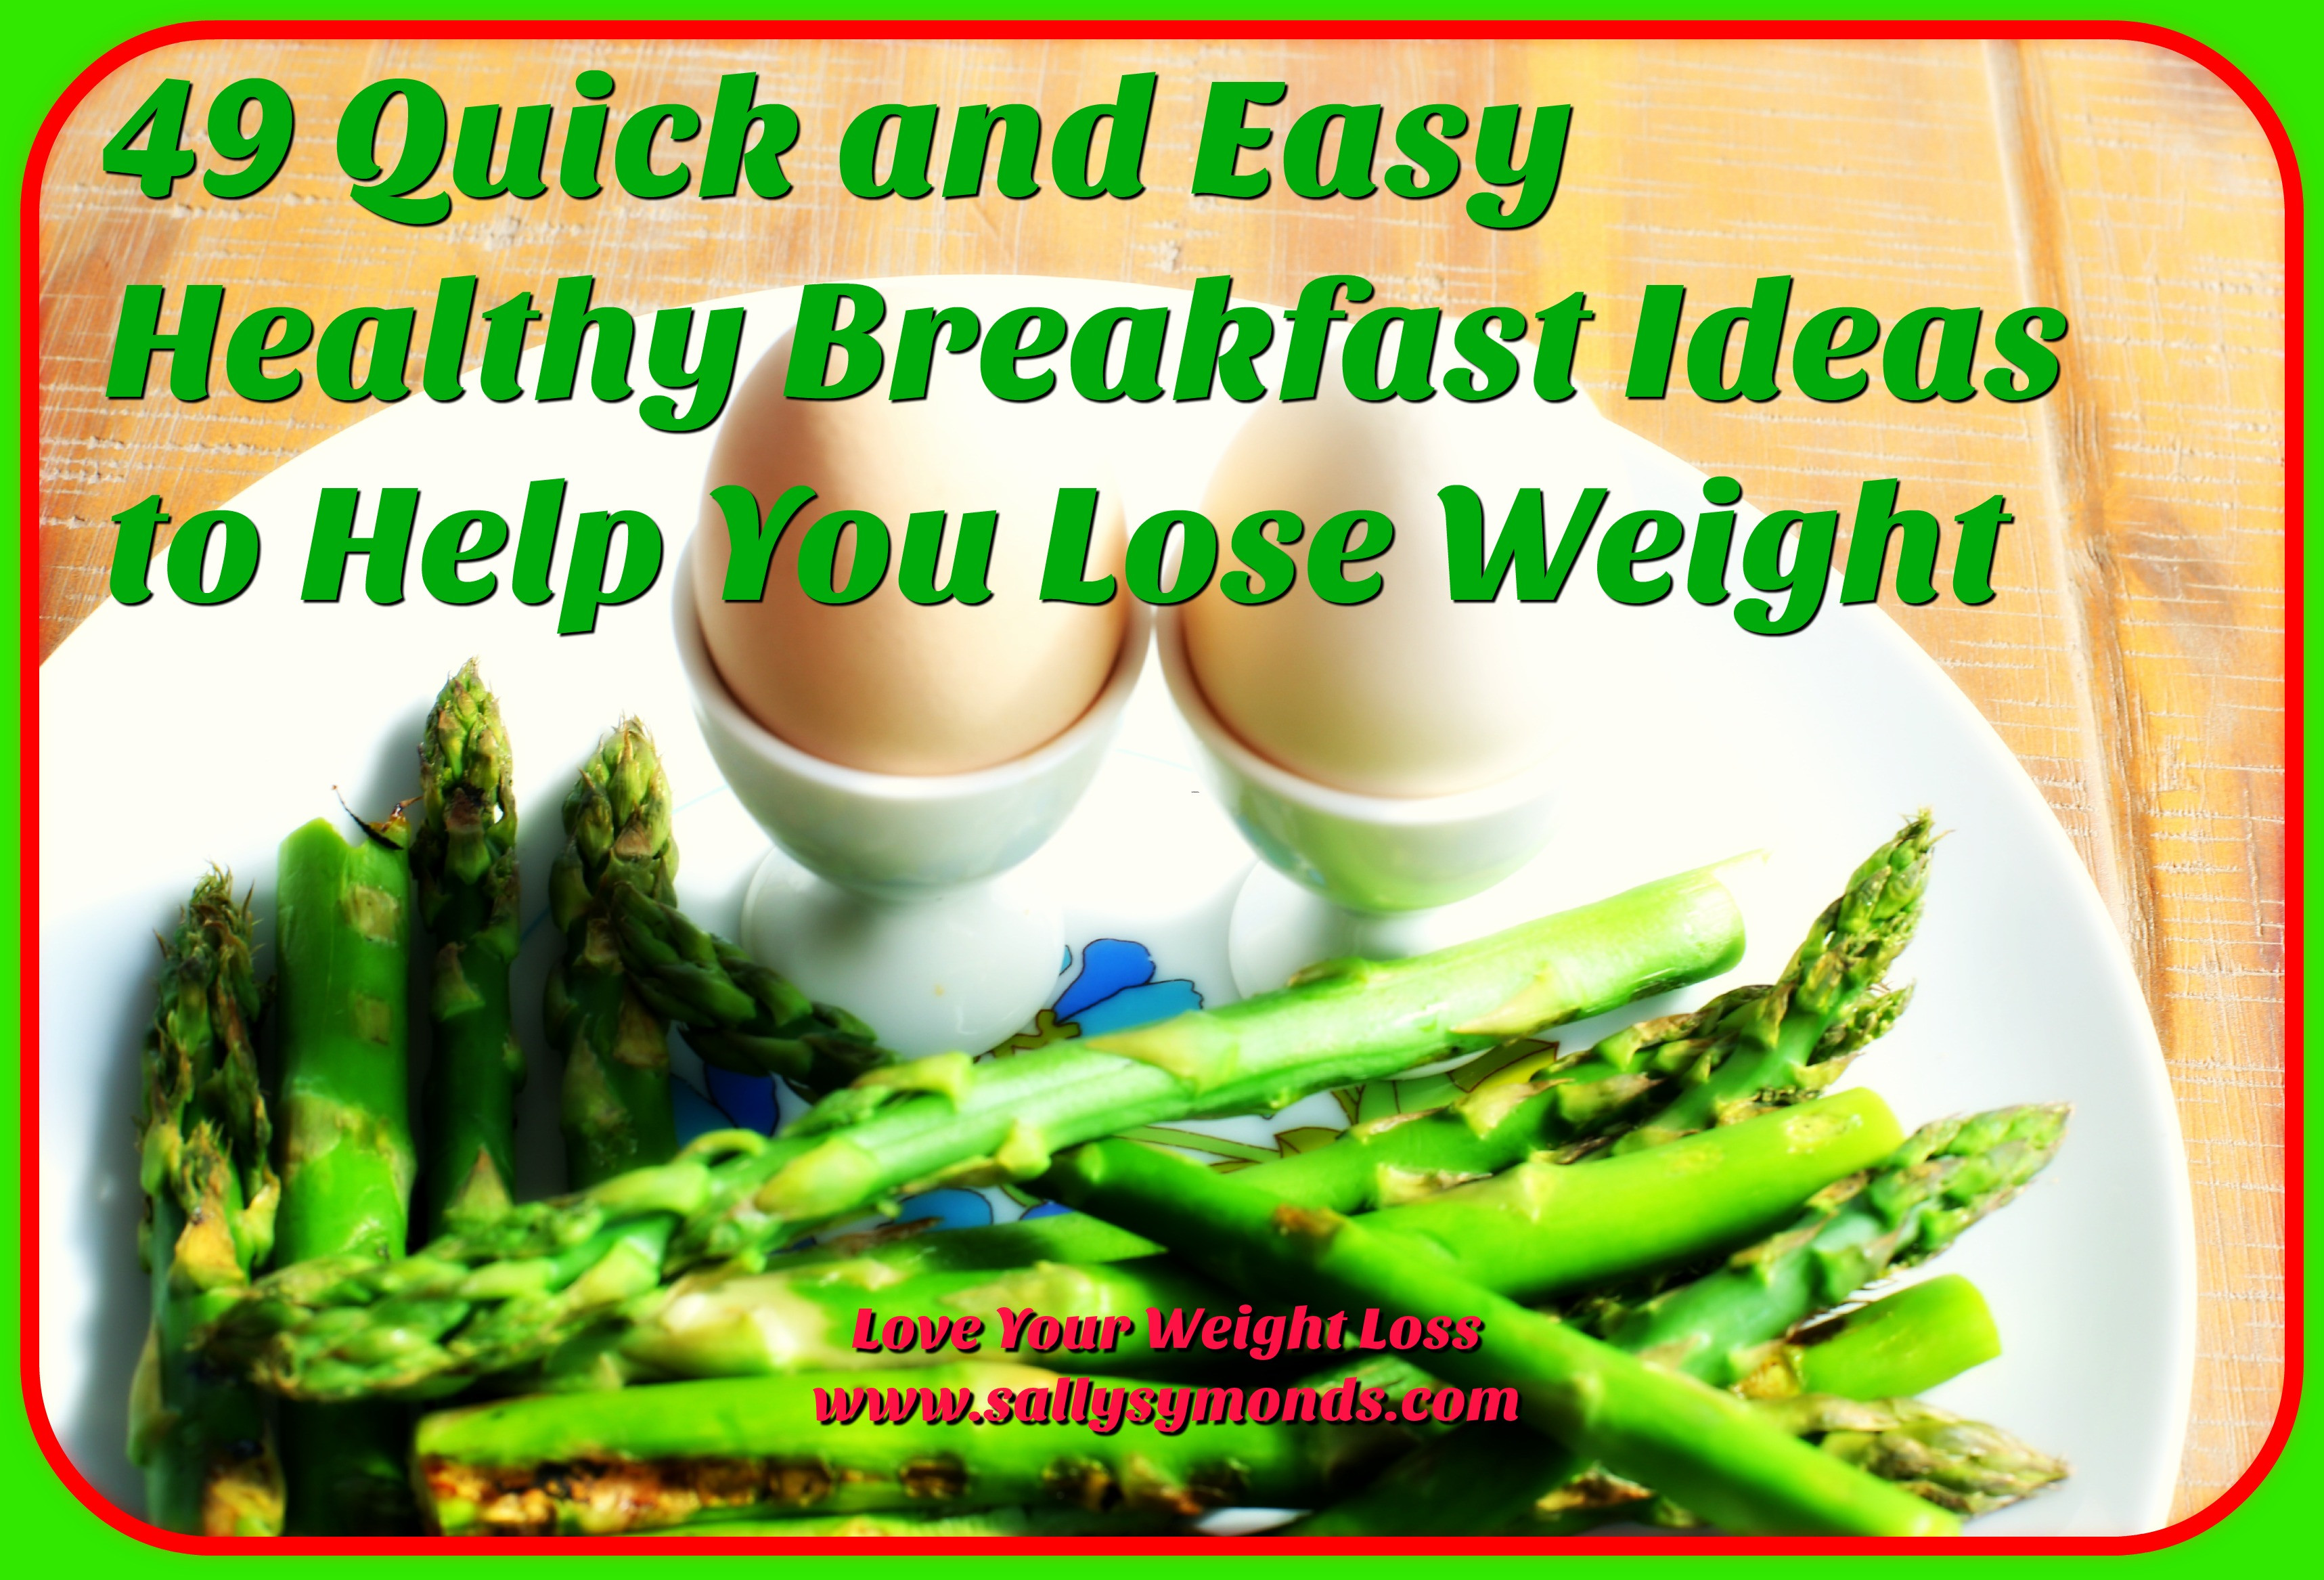 Quick Healthy Breakfast For Weight Loss  49 Quick and Easy Healthy Breakfast Ideas to Help You Lose